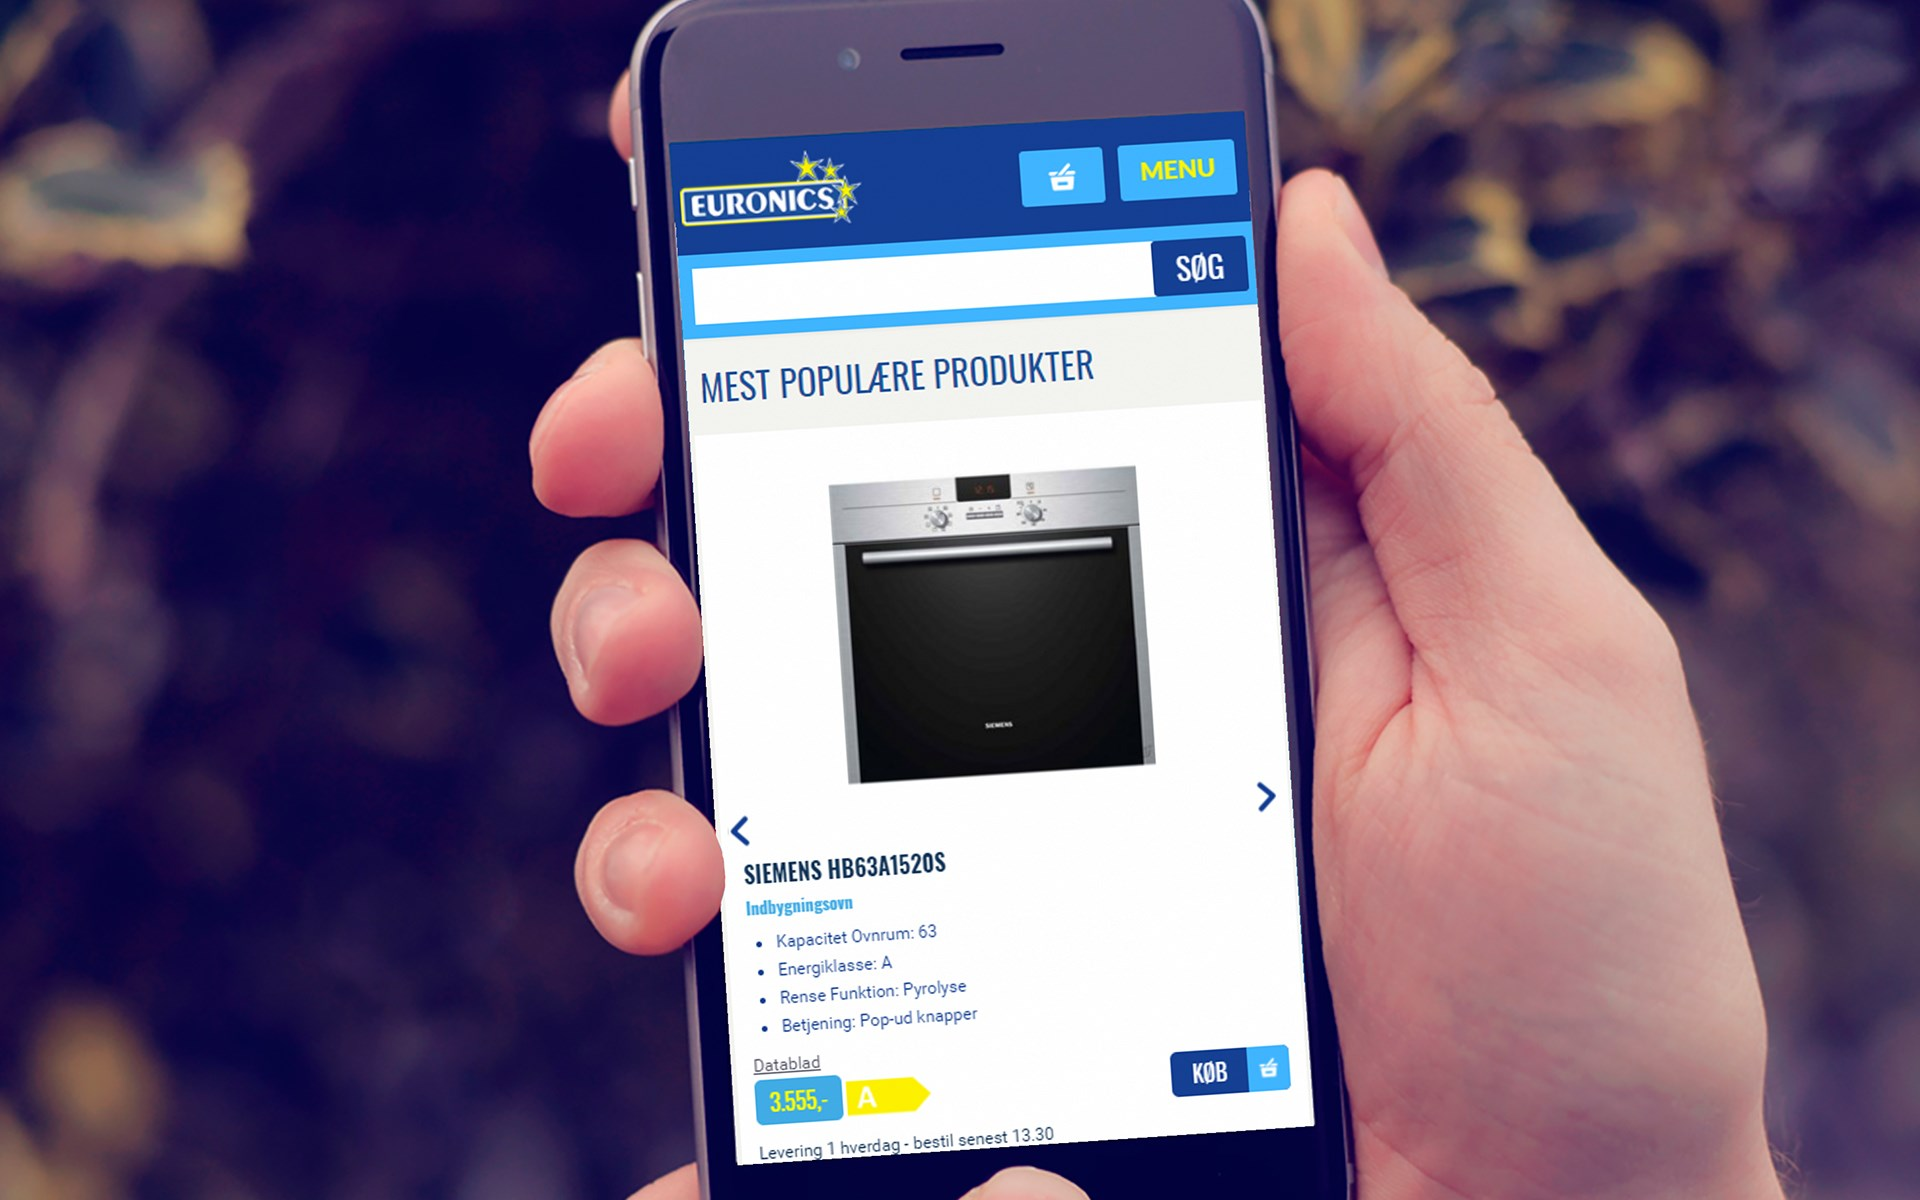 Euronics mobilvenligt website